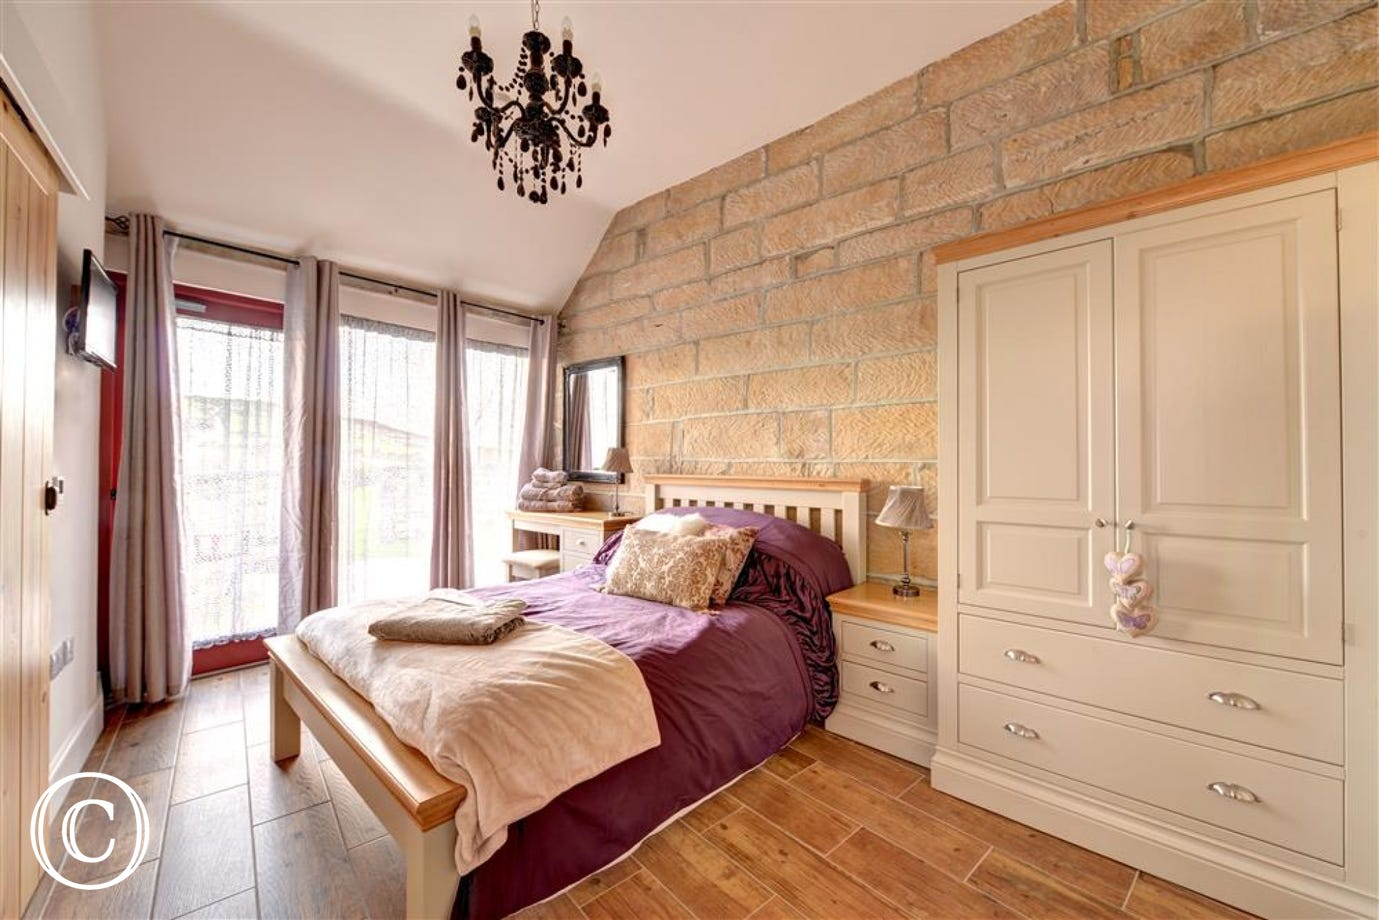 Bedroom 1 with double bed and floor to ceiling door and windows.